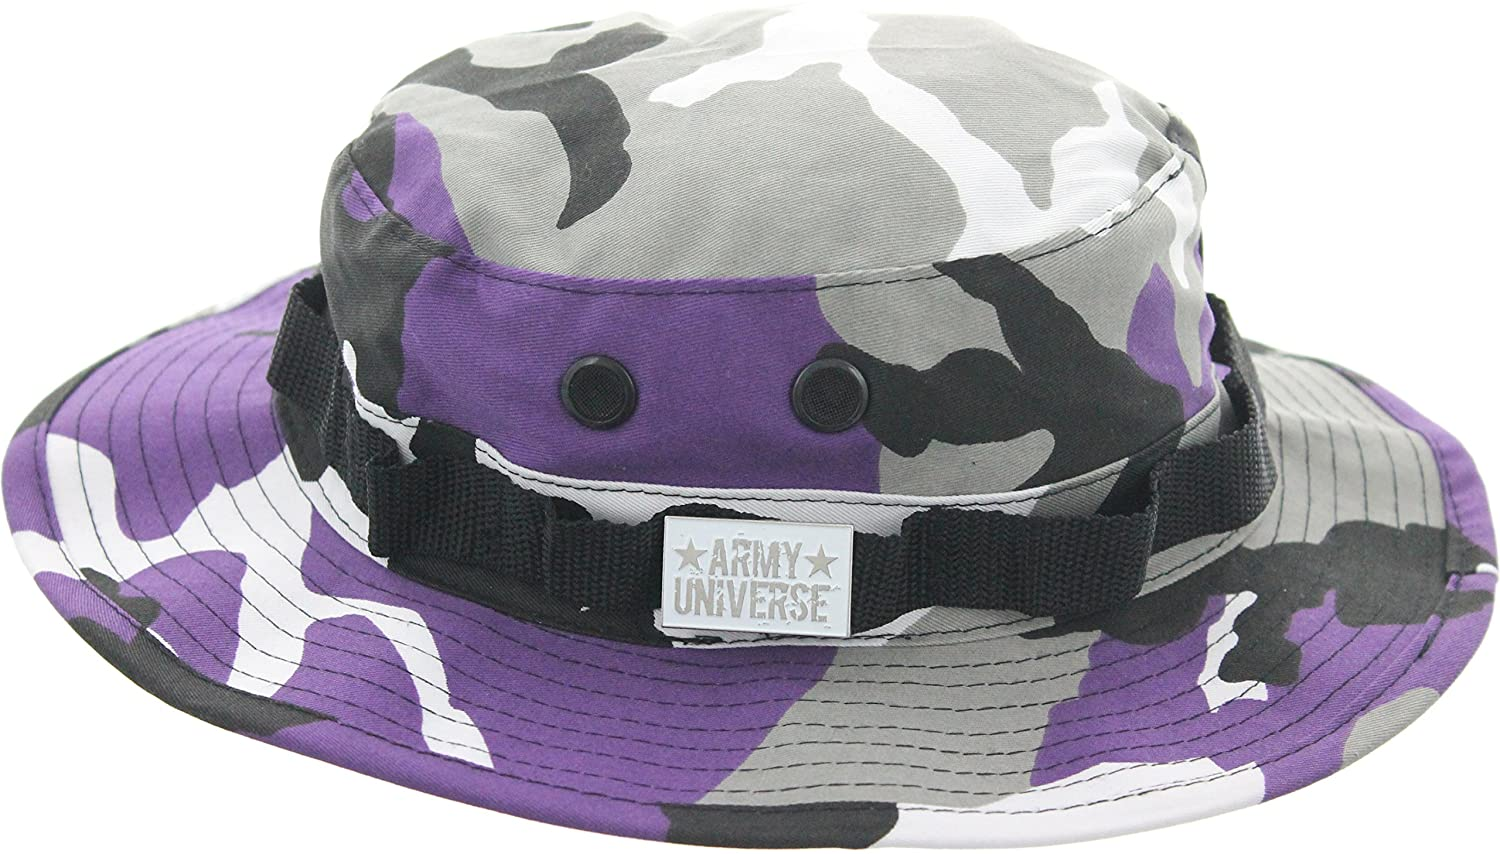 Army Universe Tactical Boonie Hat Military Camo Bucket Wide Brim Sun  Fishing Bush Booney Cap with Pin AUBOONIEHATS d37a790be884